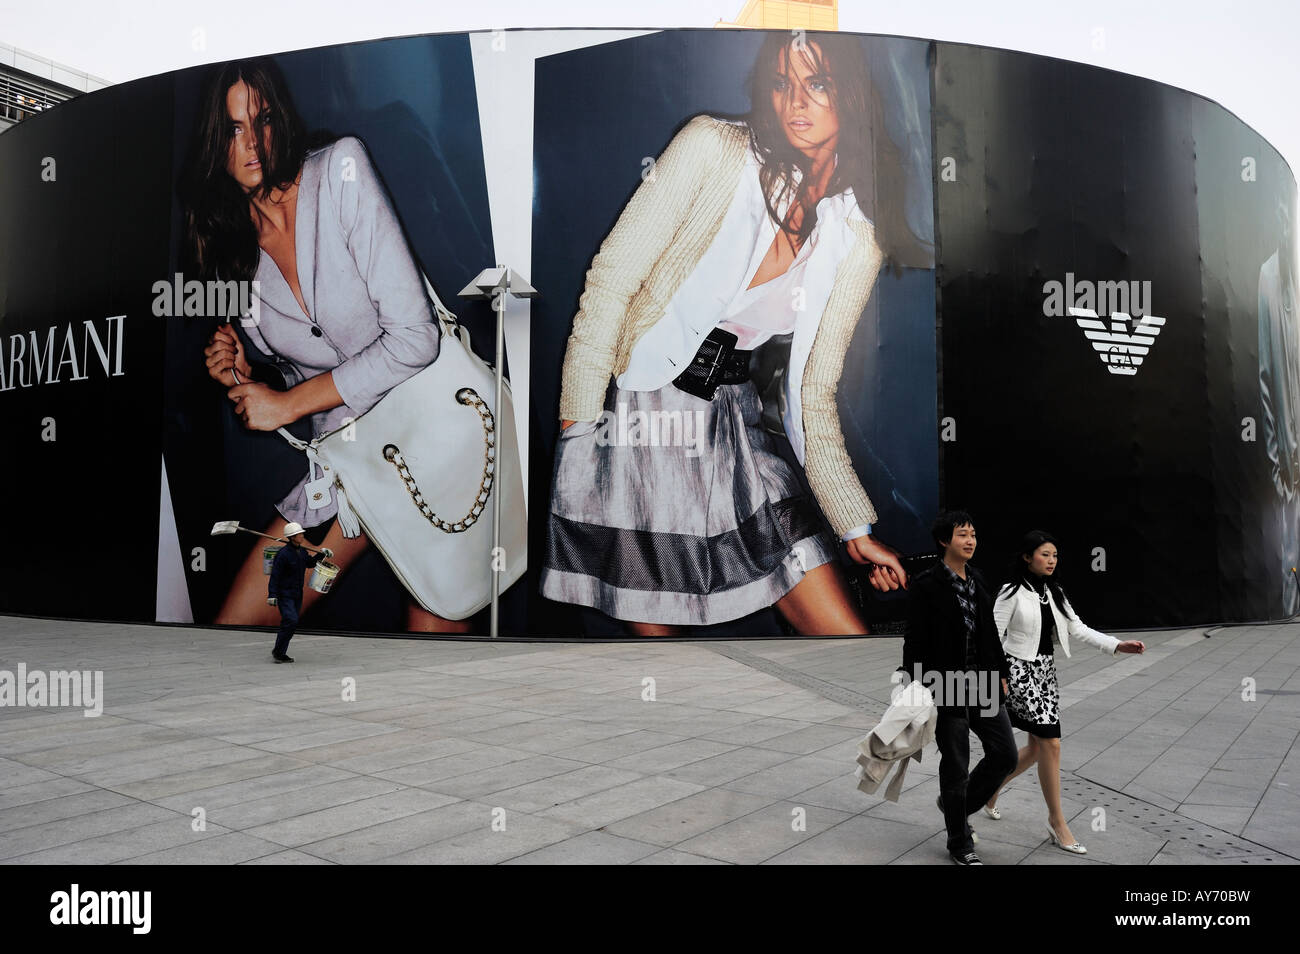 People walk past a huge billboard of Emporio Armani in Beijing CBD, China. 03-Apr-2008 - Stock Image